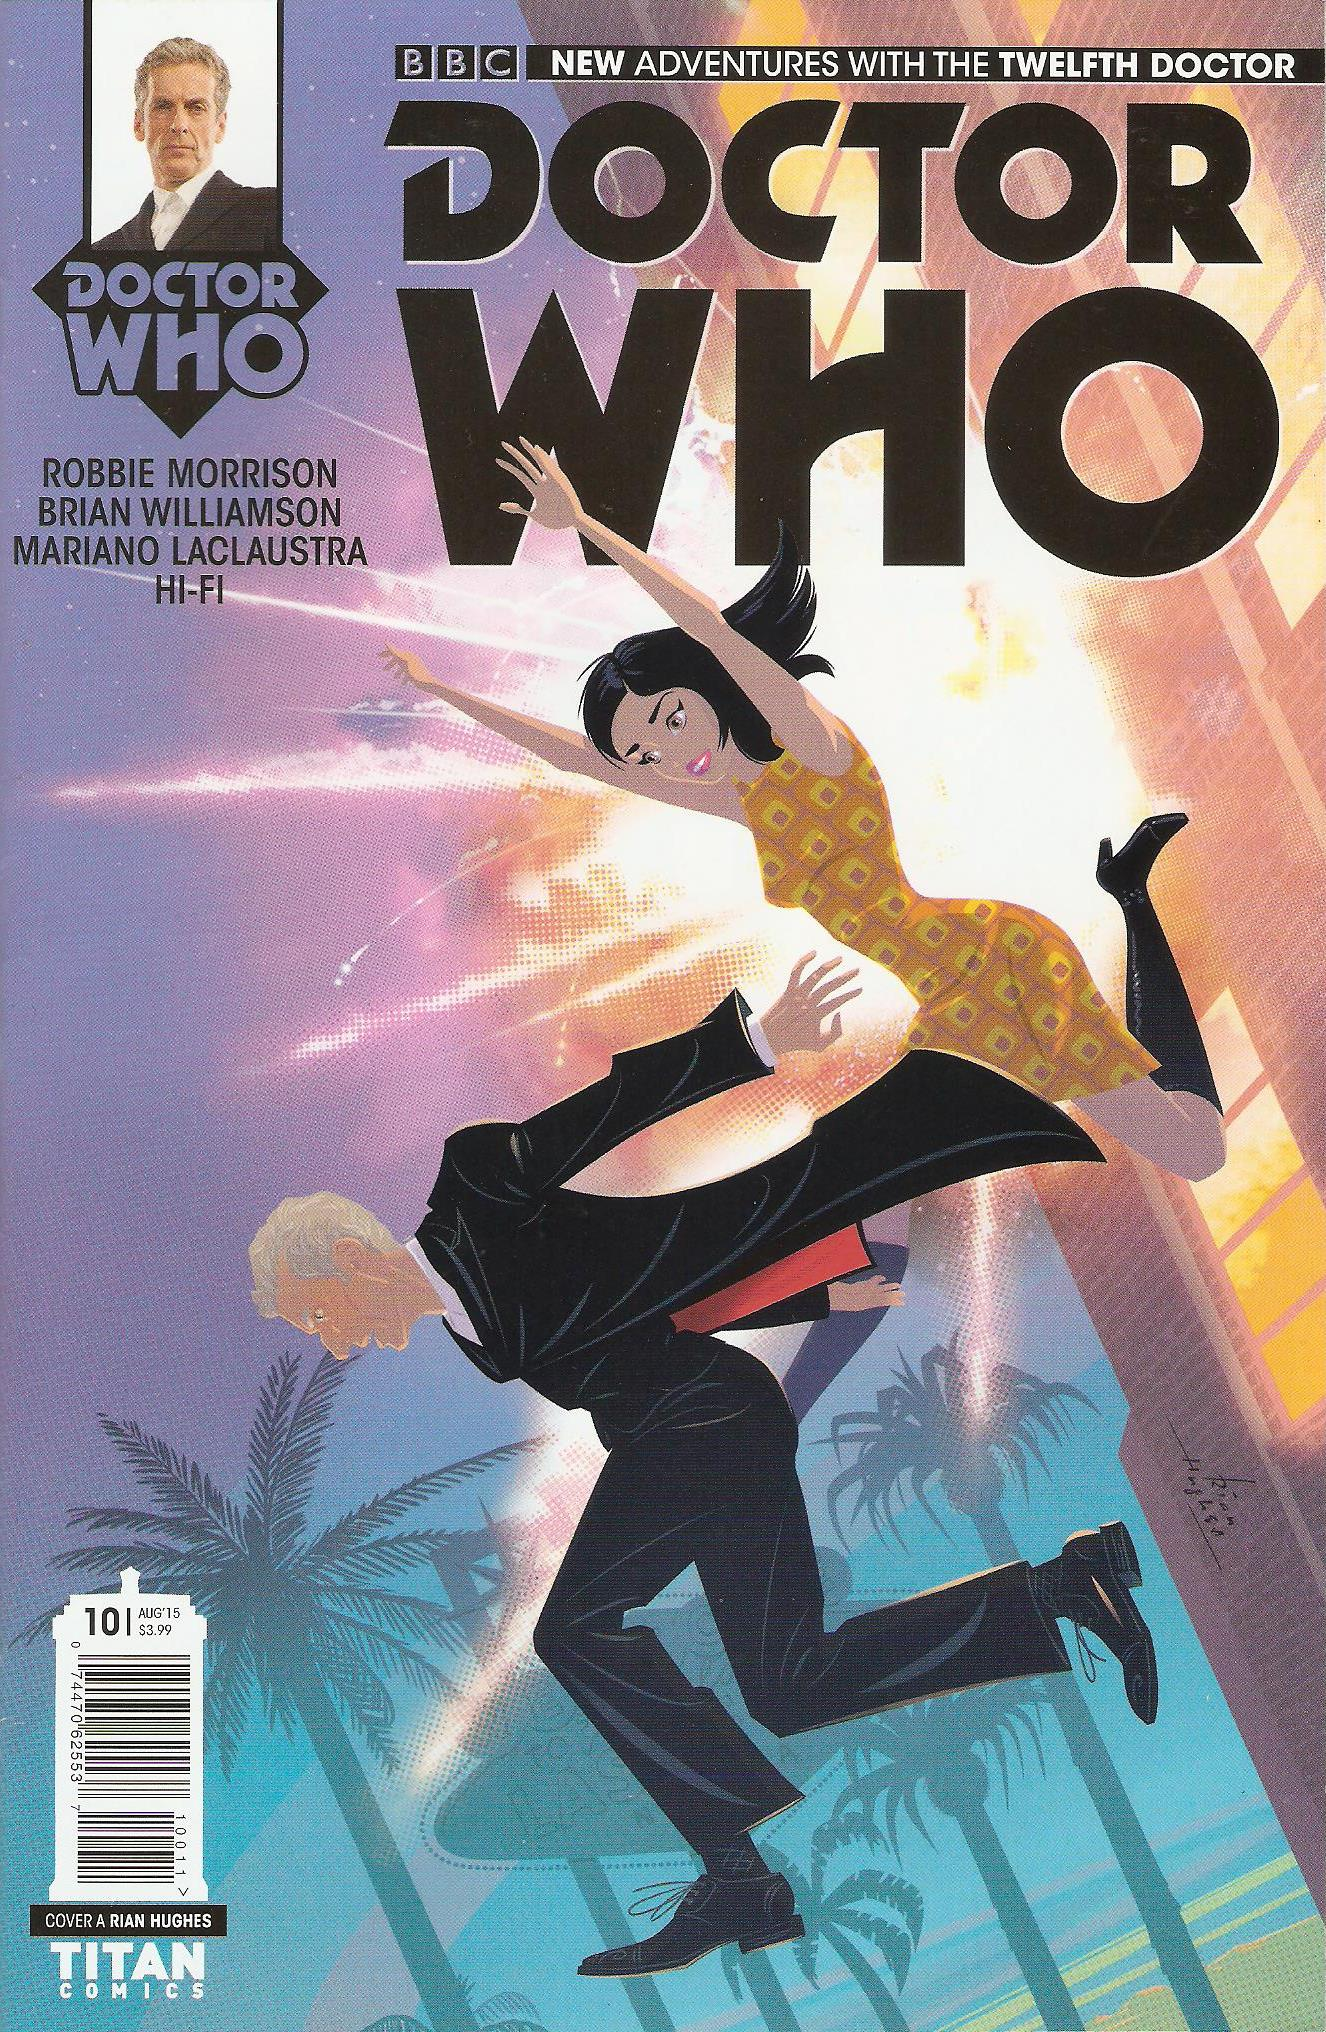 Twelfth doctor issue 10a